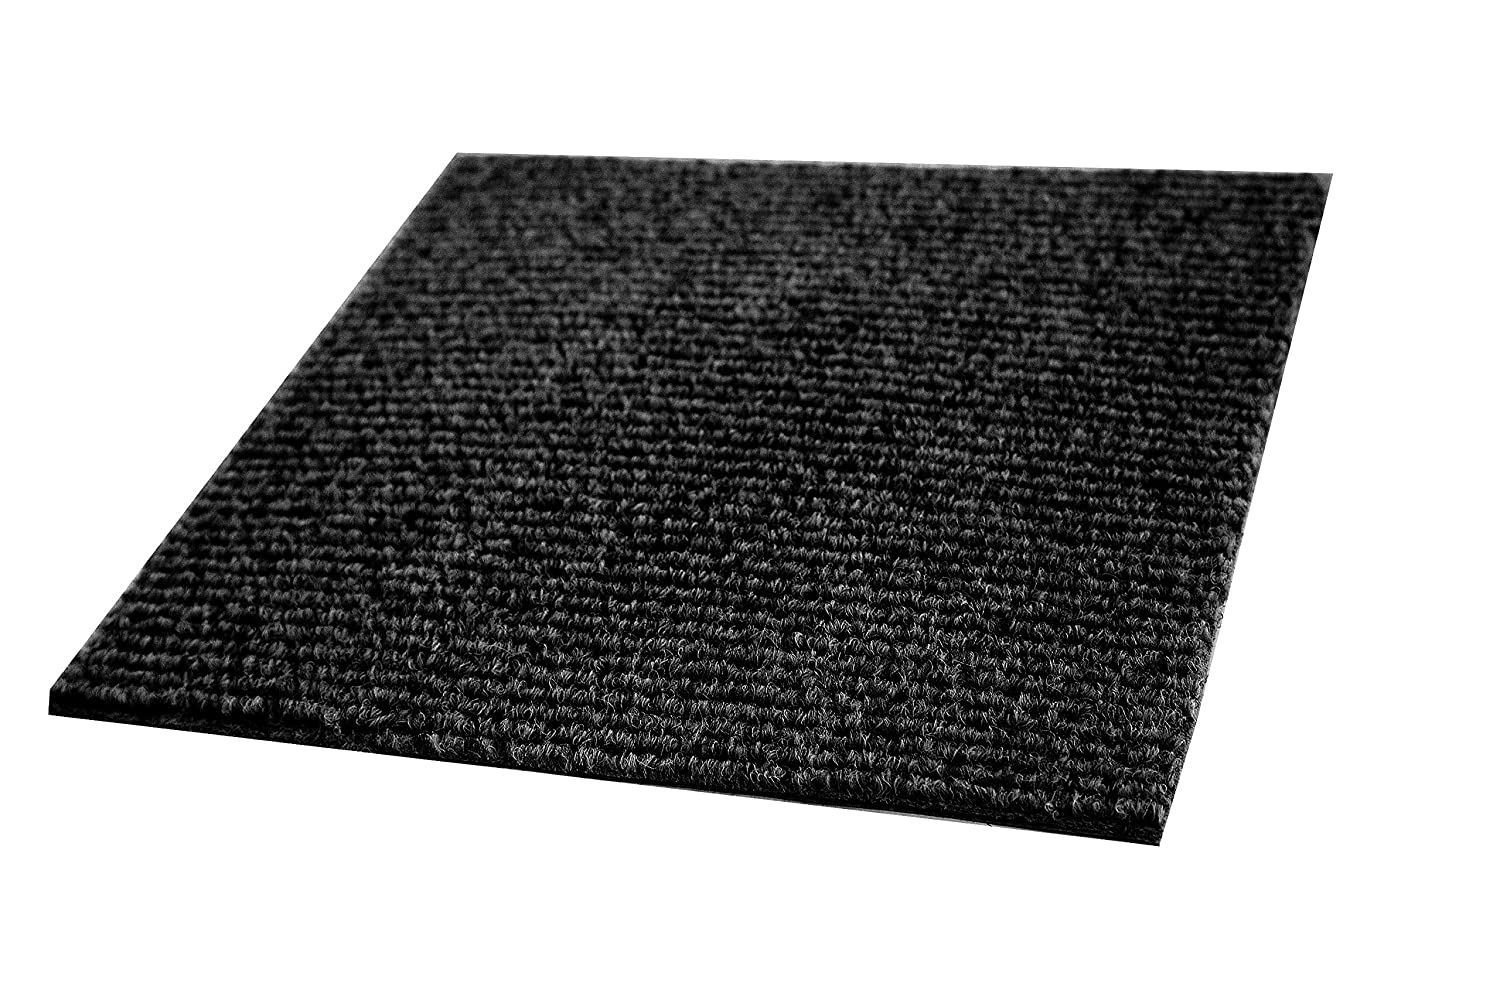 Incstores berber carpet tiles black 20 per pack amazon baanklon Choice Image